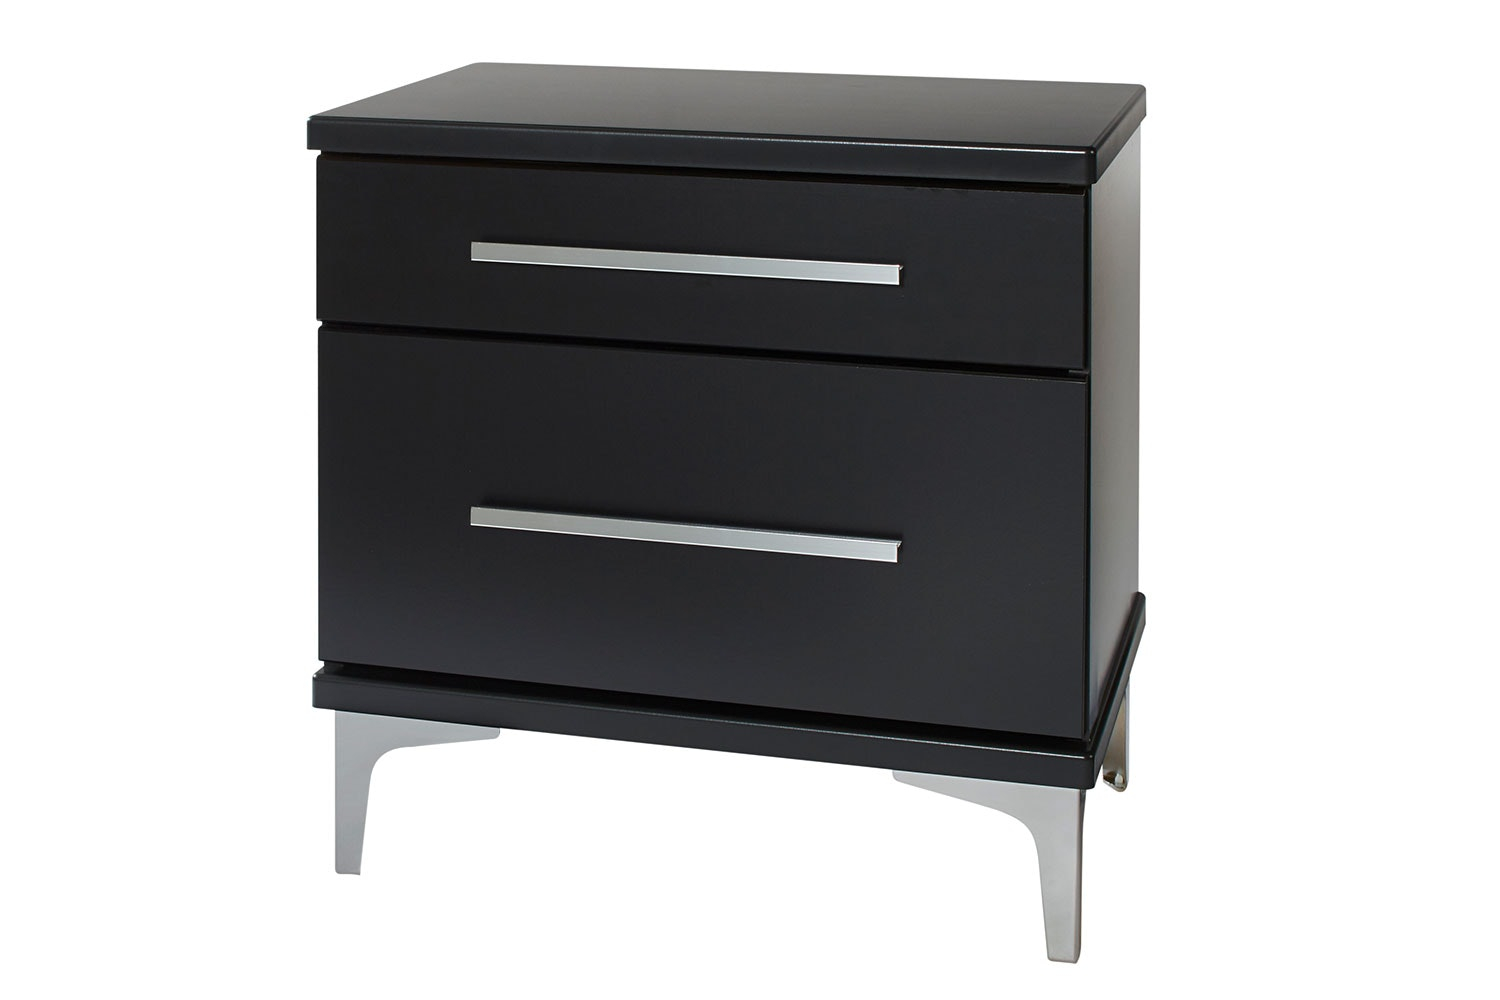 Modello 2 Drawer Bedside Table by Platform 10